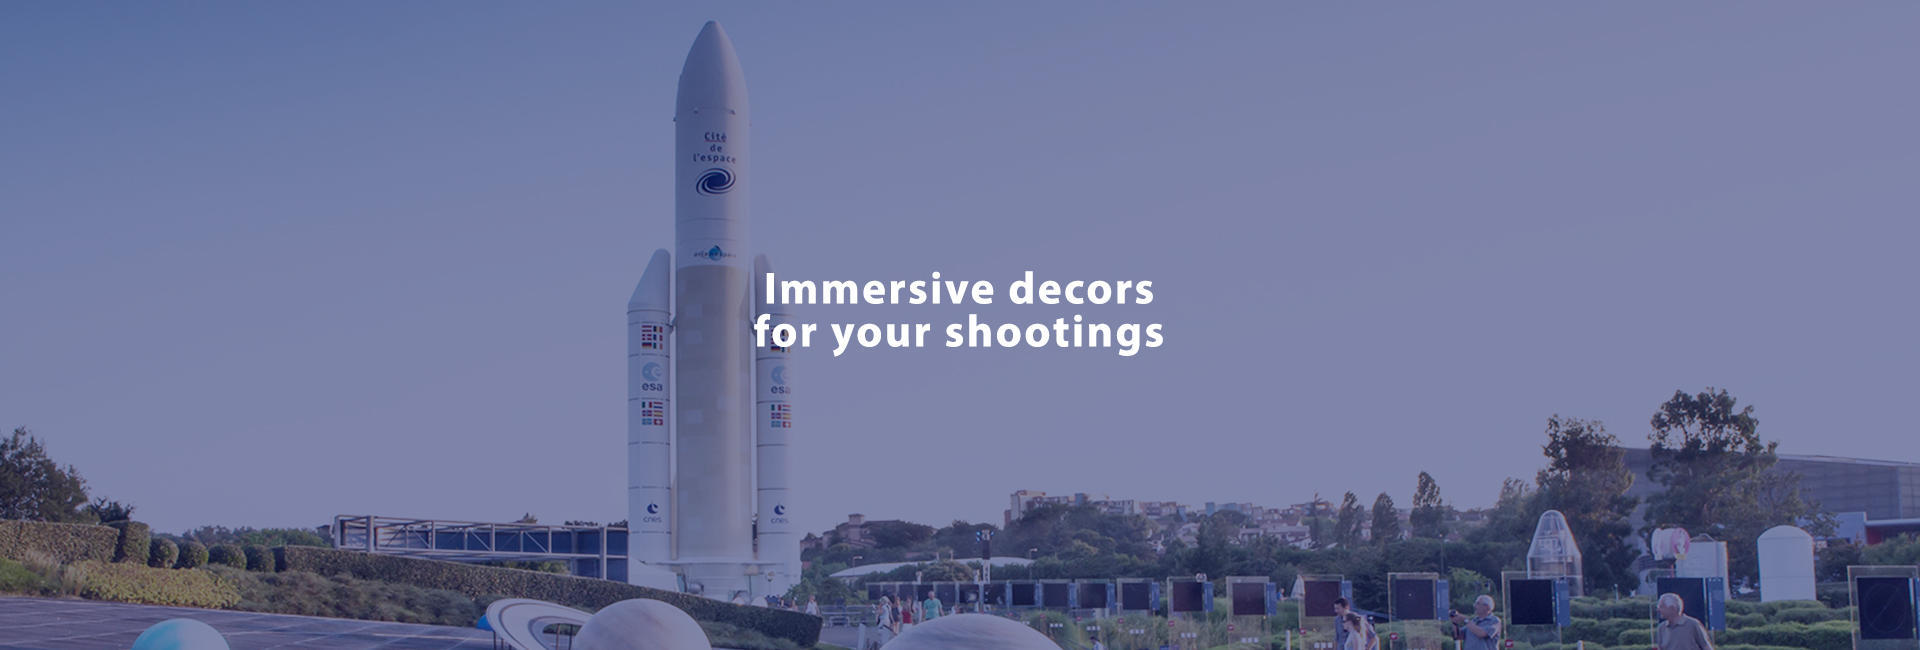 Immersive decors for your shootings